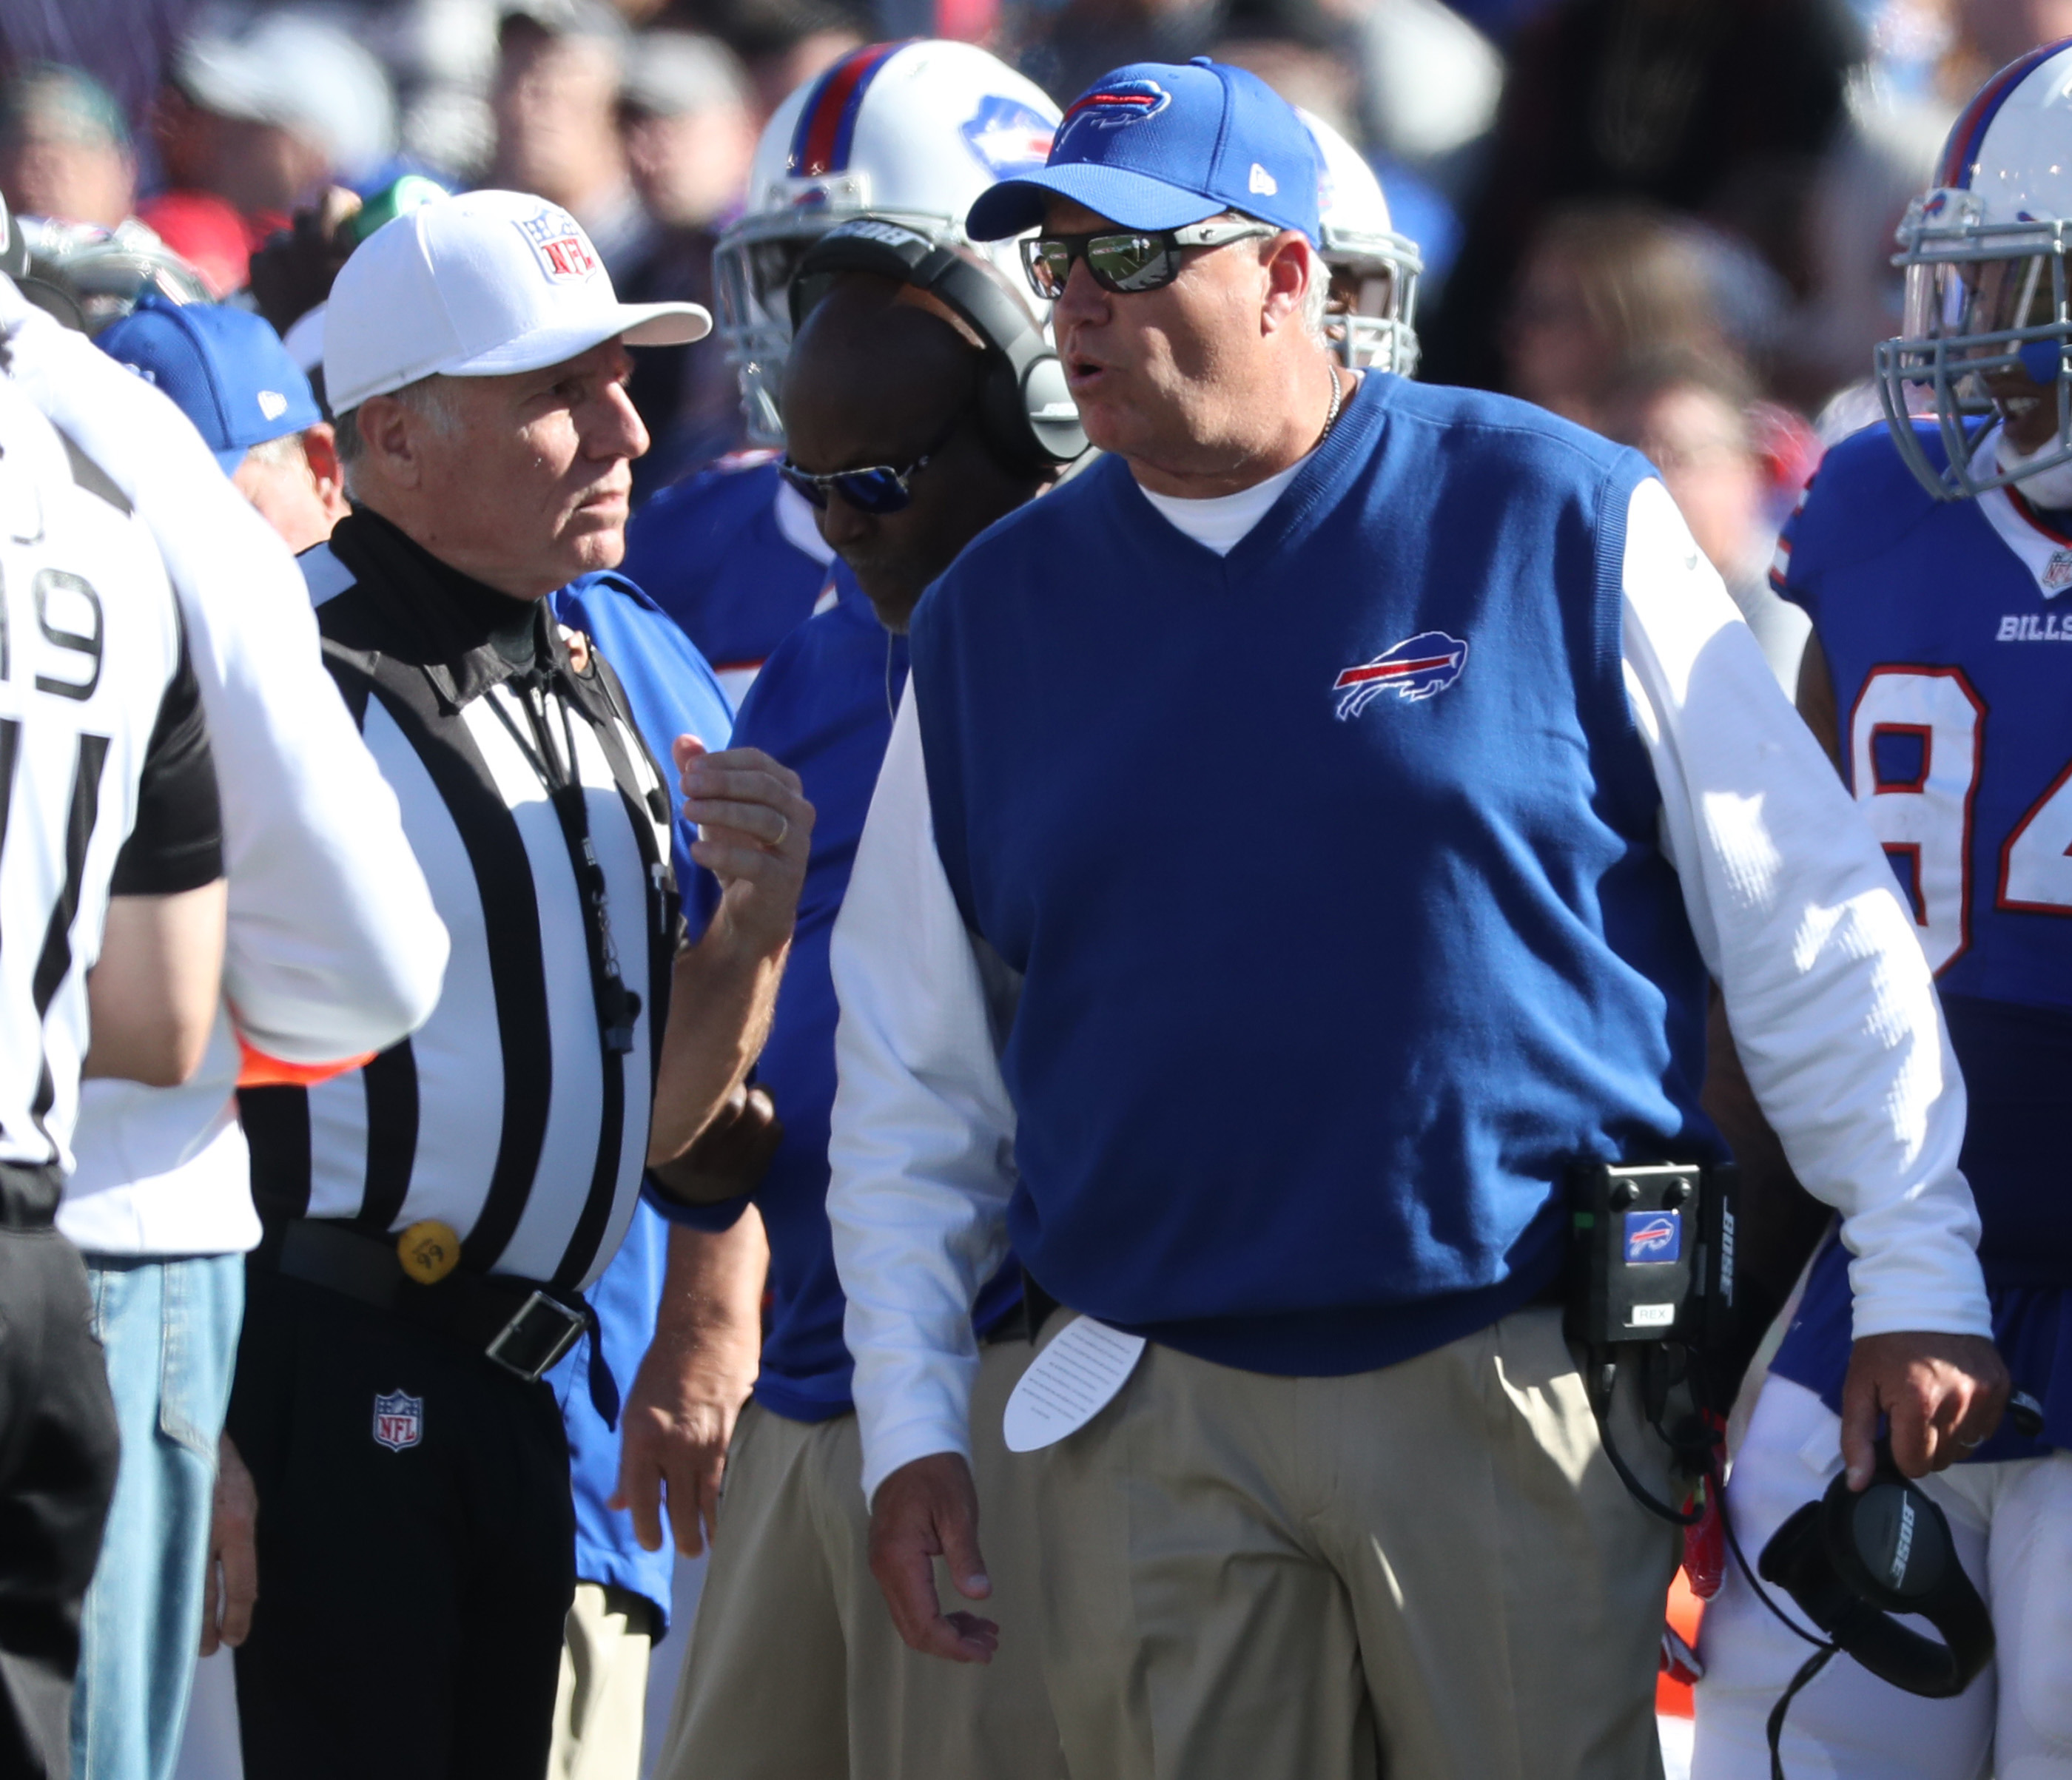 Bills coach Rex Ryan has to show his ability as a top defensive coach against Tom Brady and the Patriots Sunday.